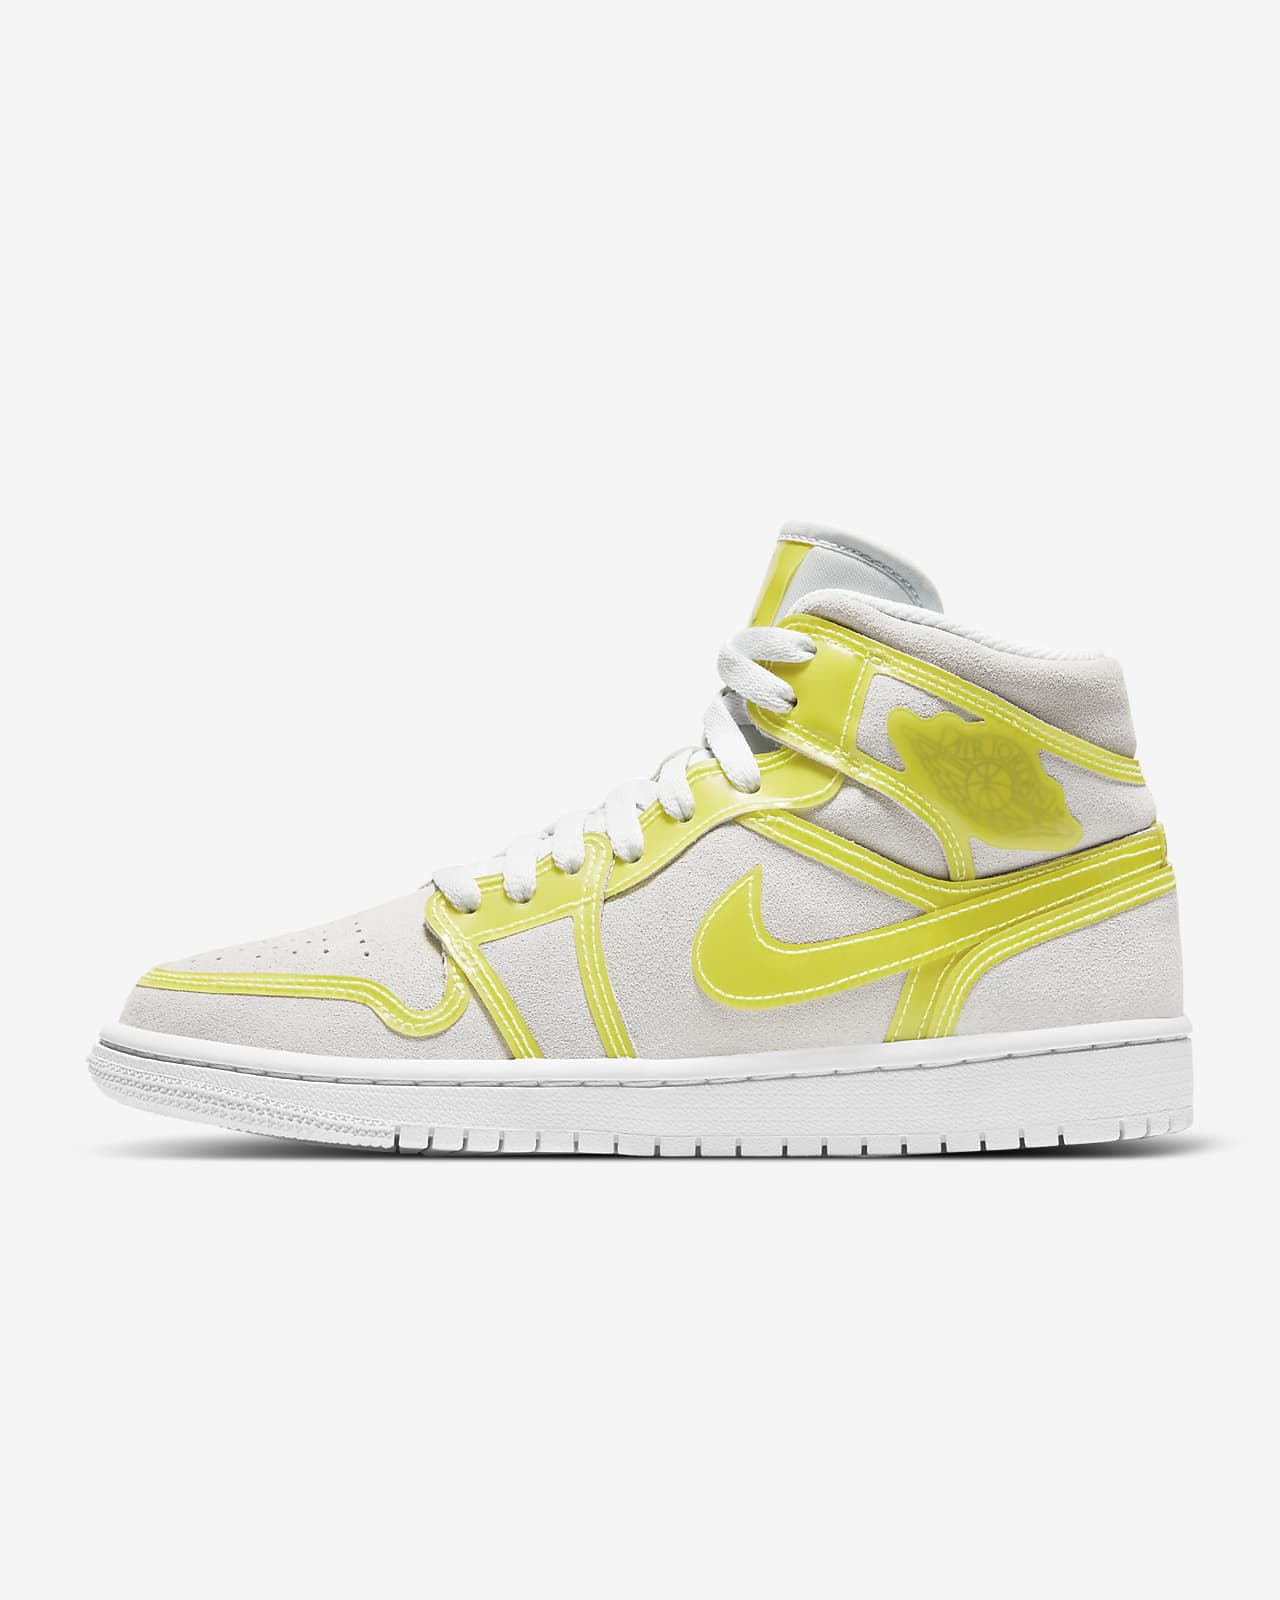 Air Jordan 1 Mid LX Women's Shoe